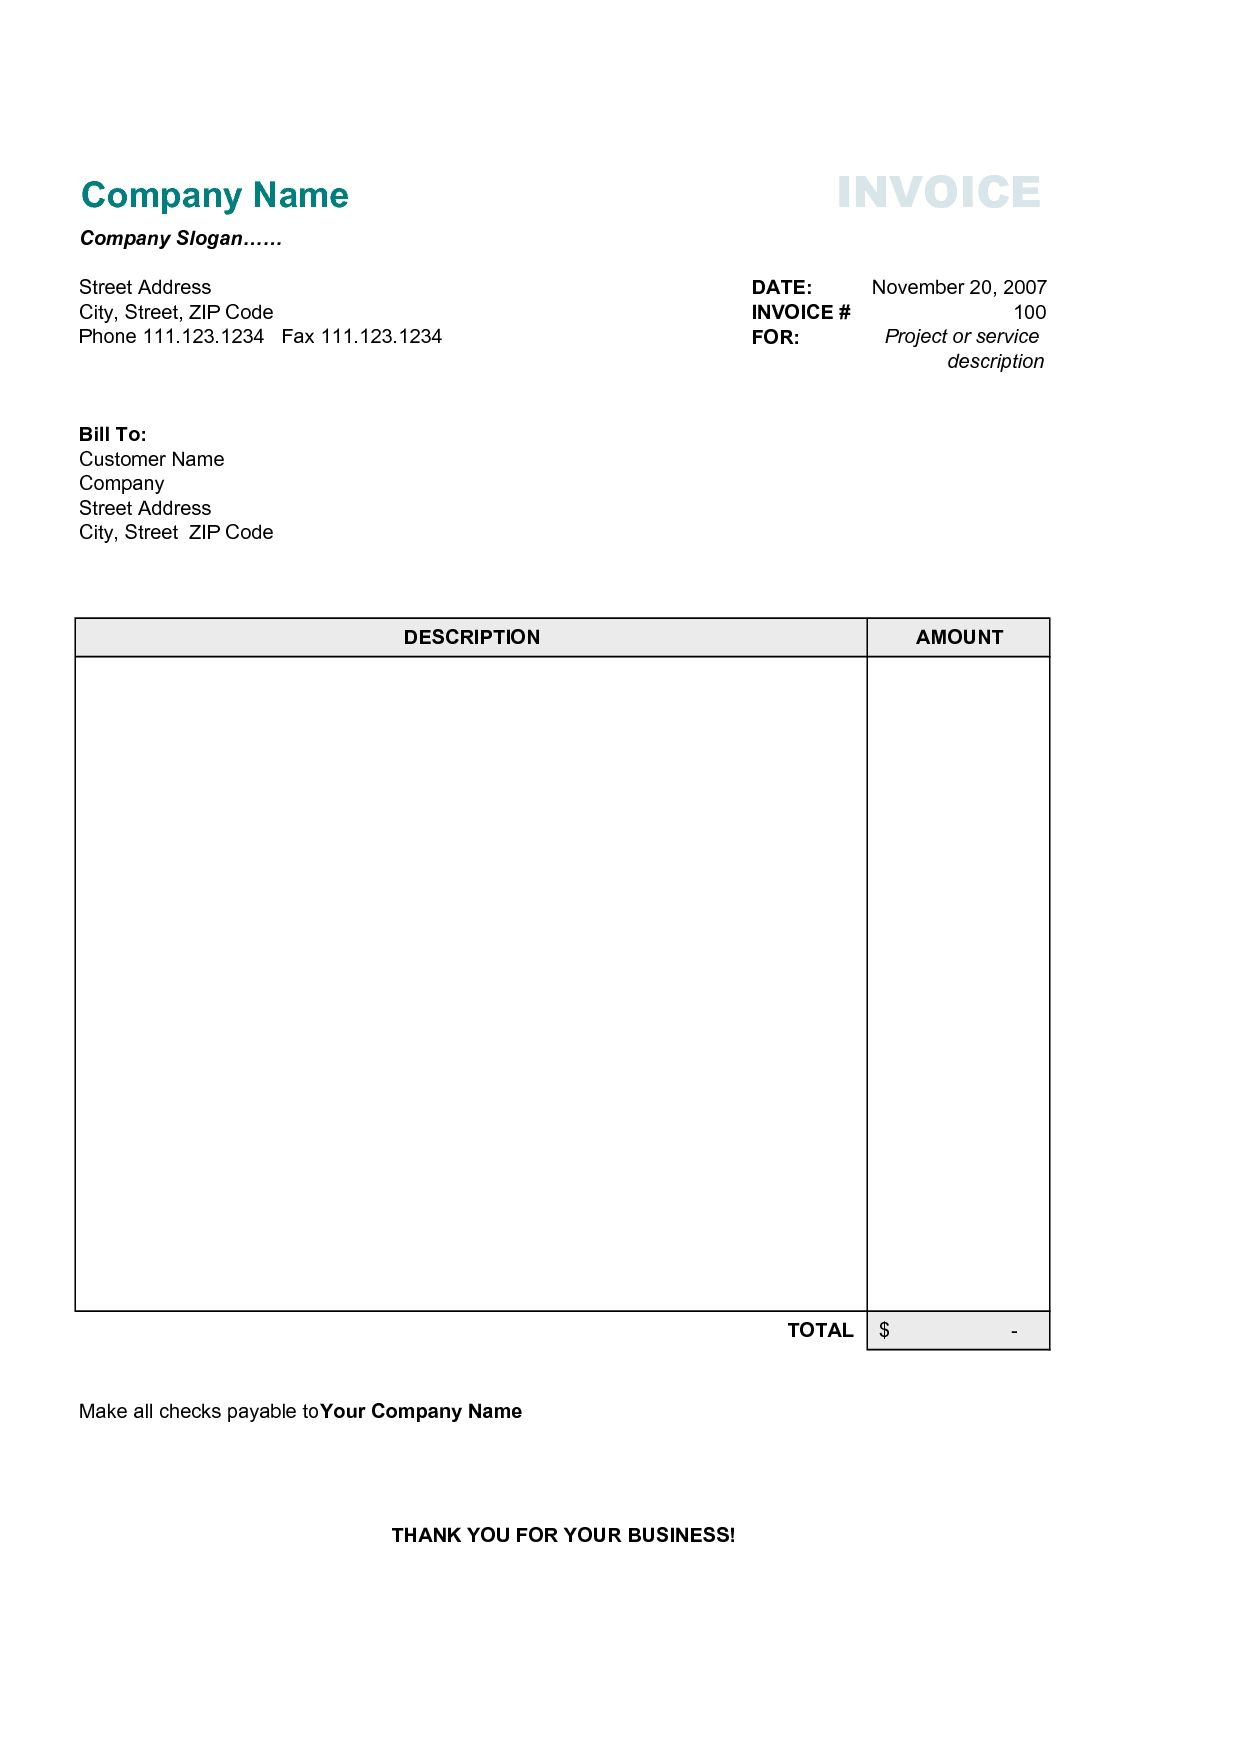 Awesome 17 Best Photos Of Printable Commercial Invoice Sample Business Simple Invoice  Form Within Company Invoice Forms